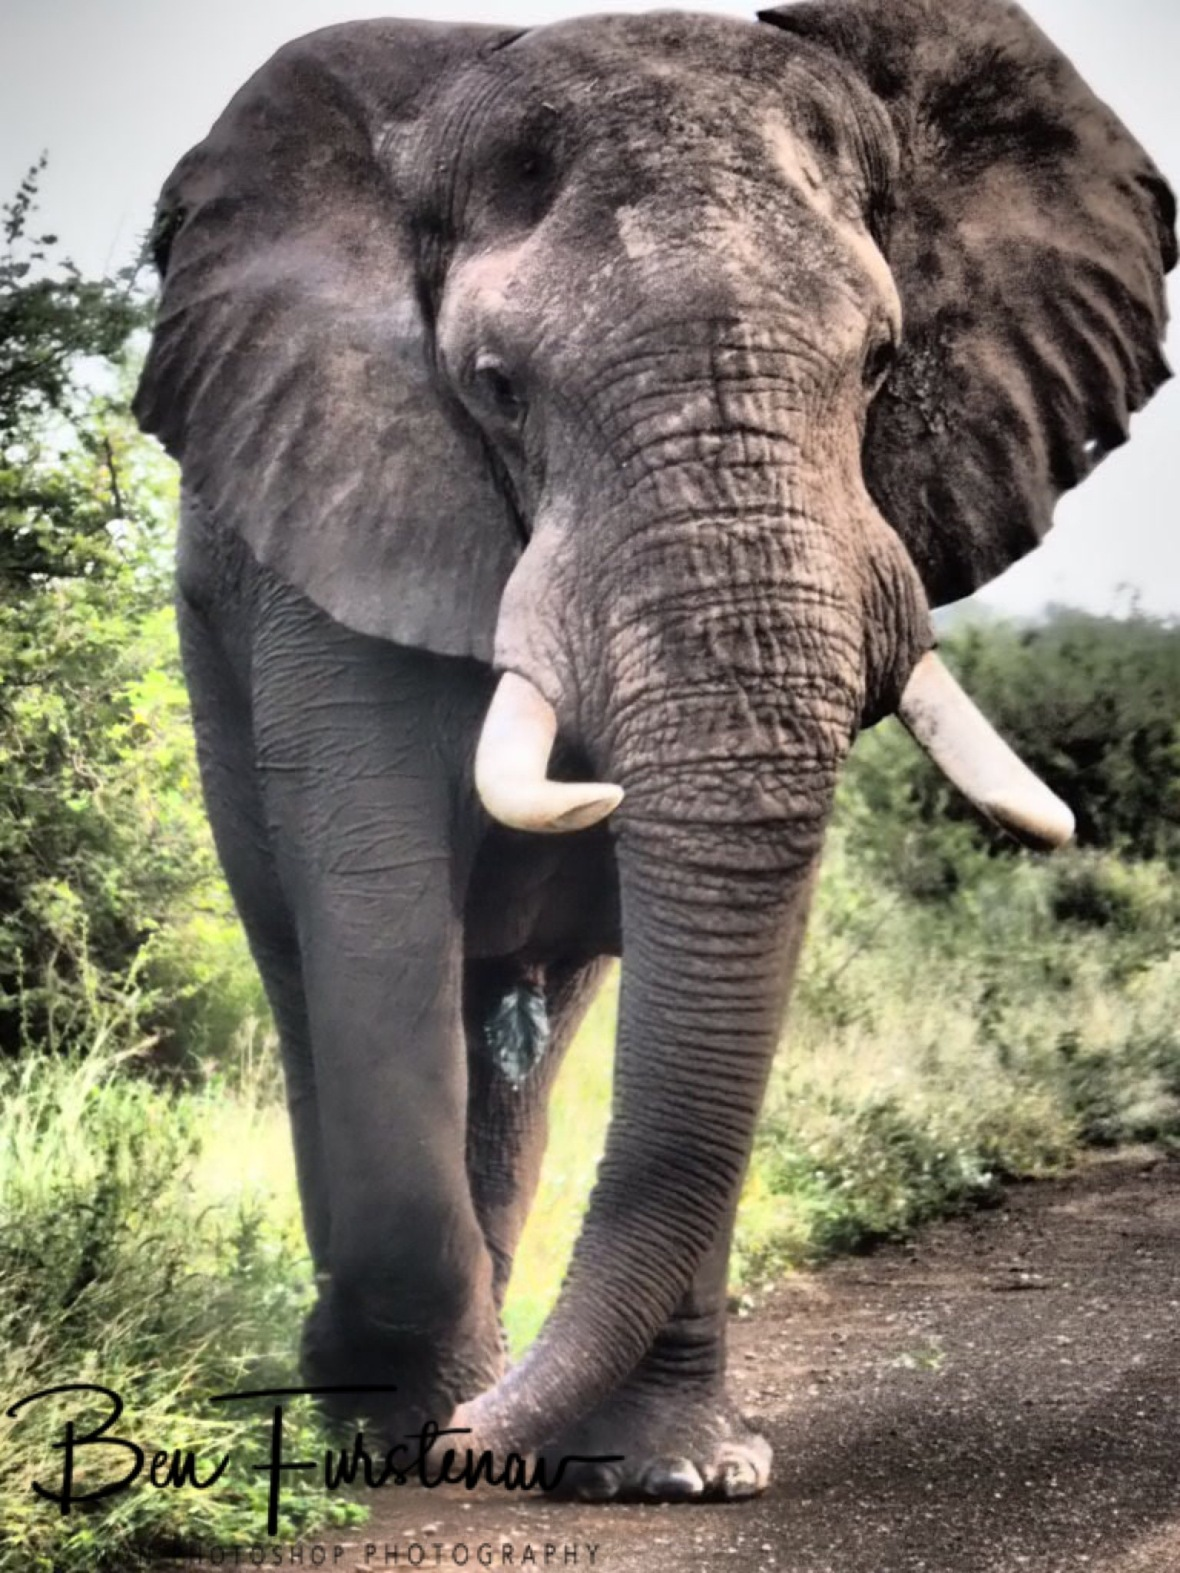 A colossal elephant bull, Kruger National Park